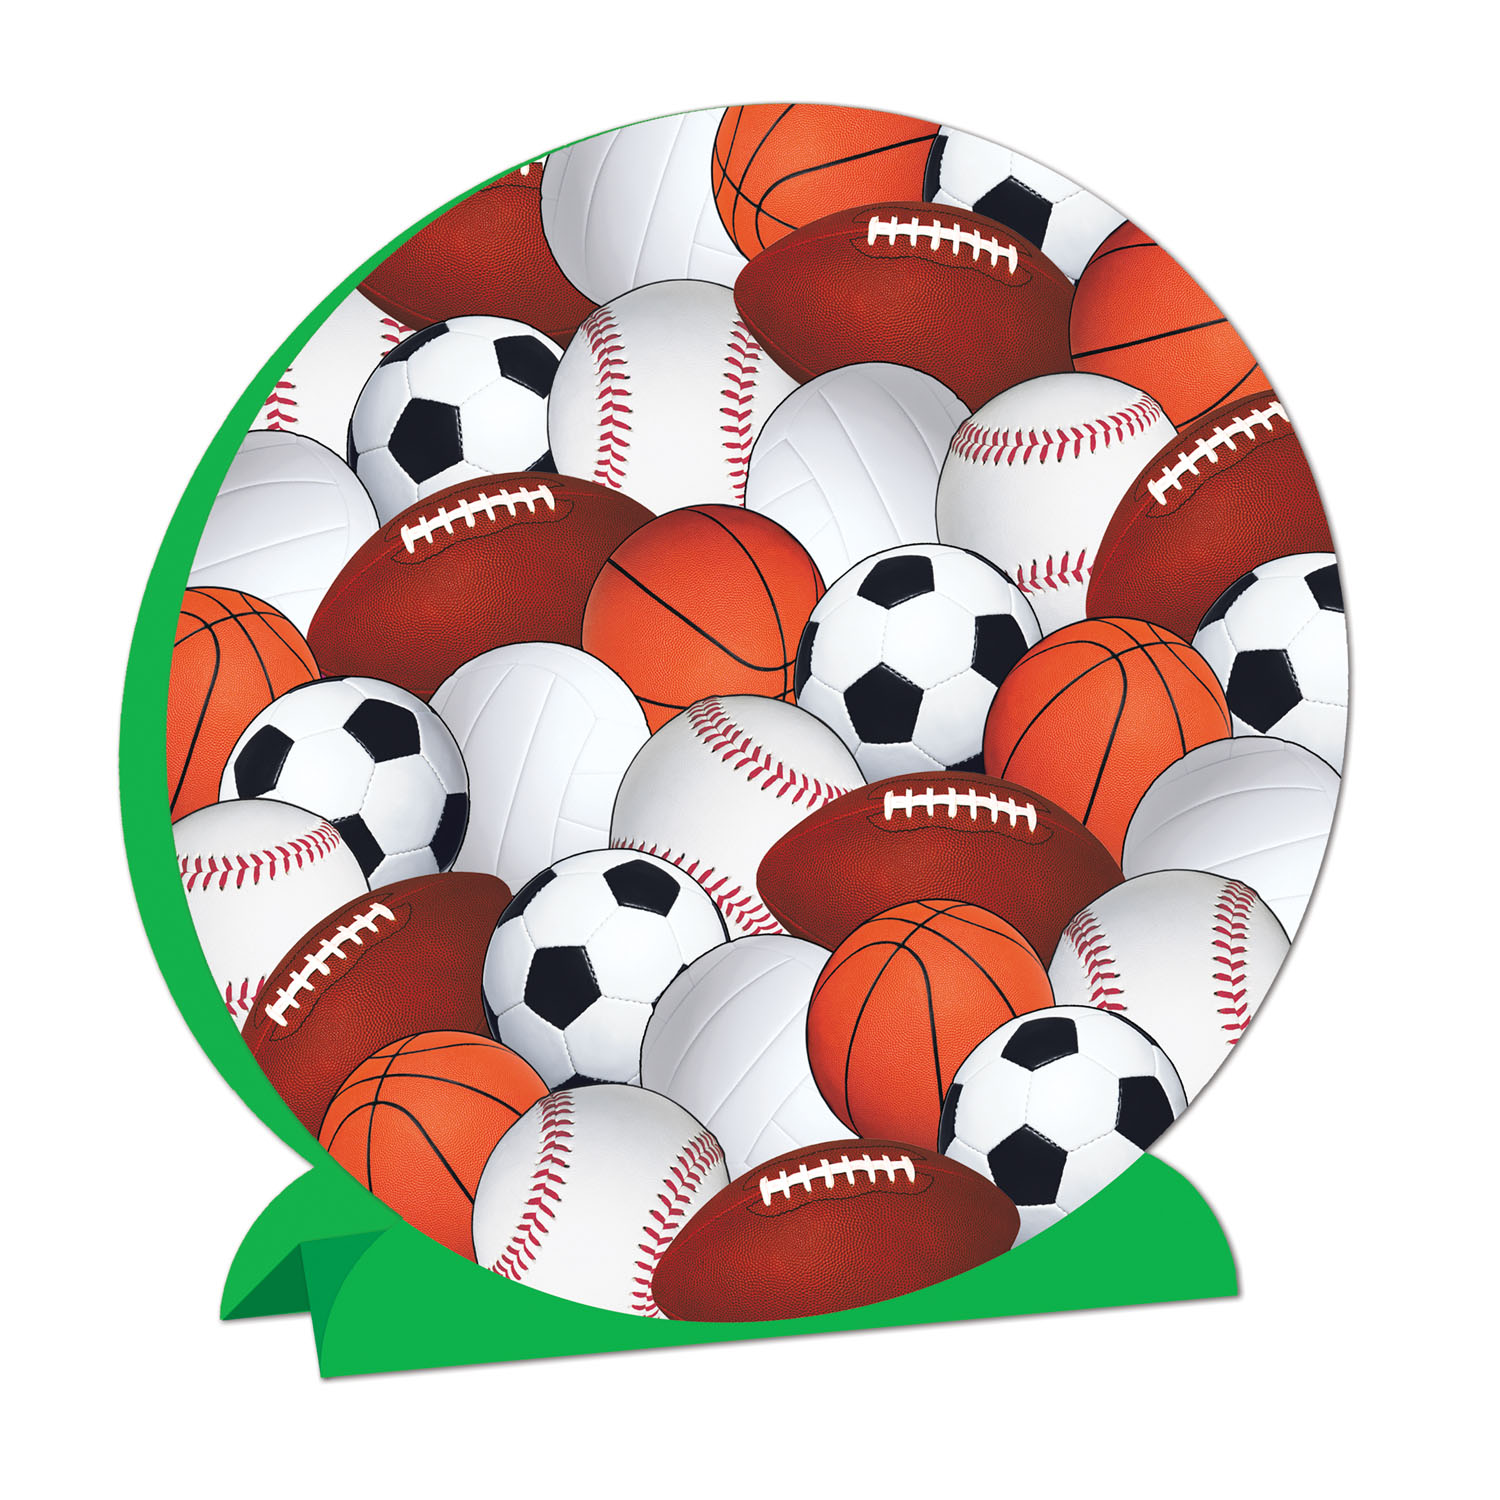 3-D Sports Centerpiece (Pack of 12) Game Day, Cheap centerpiece, Sports decor, Wholesale sports accessories, Inexpensive sports decorations, sports banquet, Football, Baseball, Basketball, Soccer, Volleyball